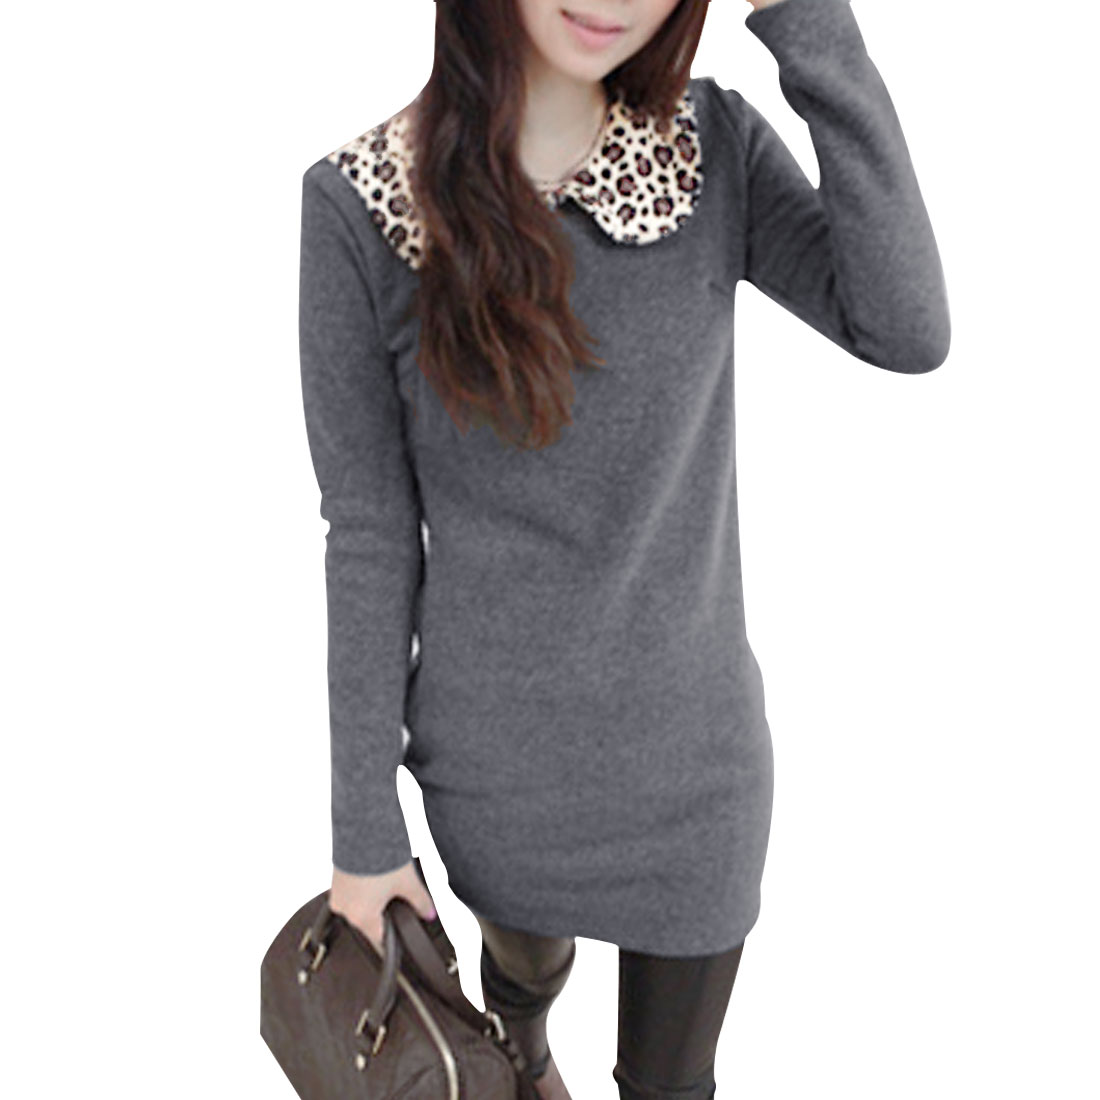 Ladies Dark Gray Peter Pan Collar Pullover Fleece Inner Casual Shirt XS